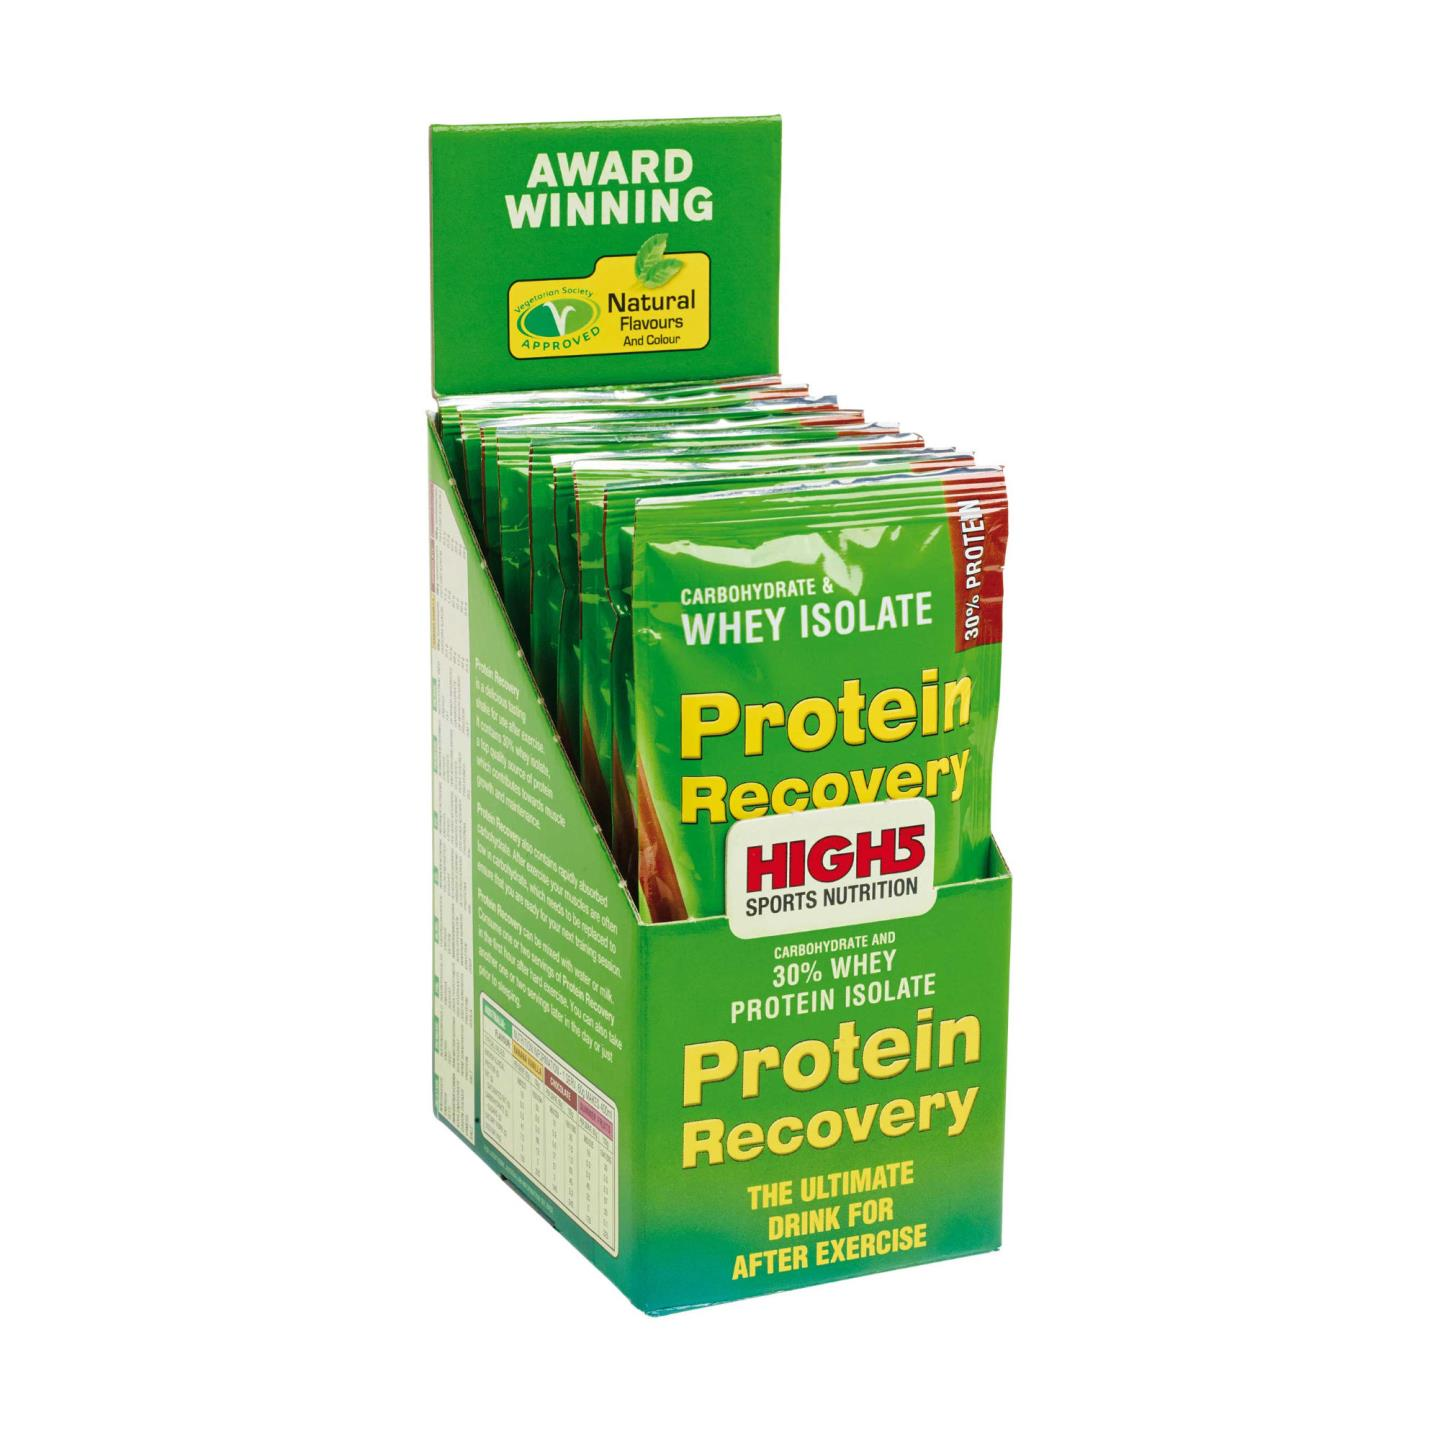 High5 Protein Recovery Σοκολάτα - 60gr